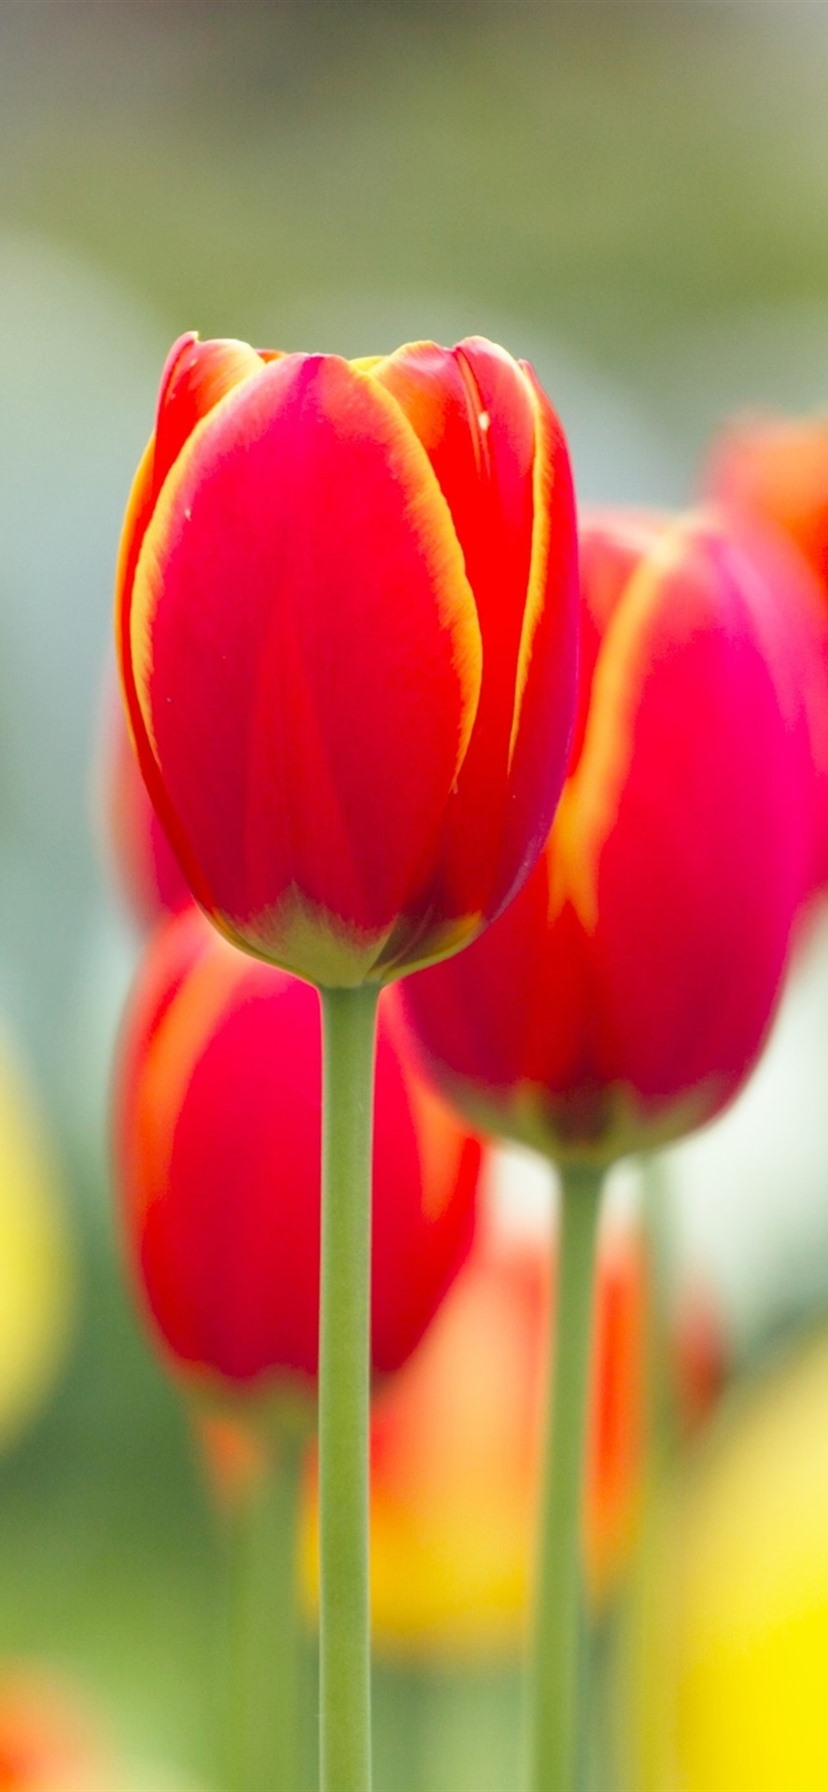 Wallpaper Red Tulip Flowers Macro Photography Blurry